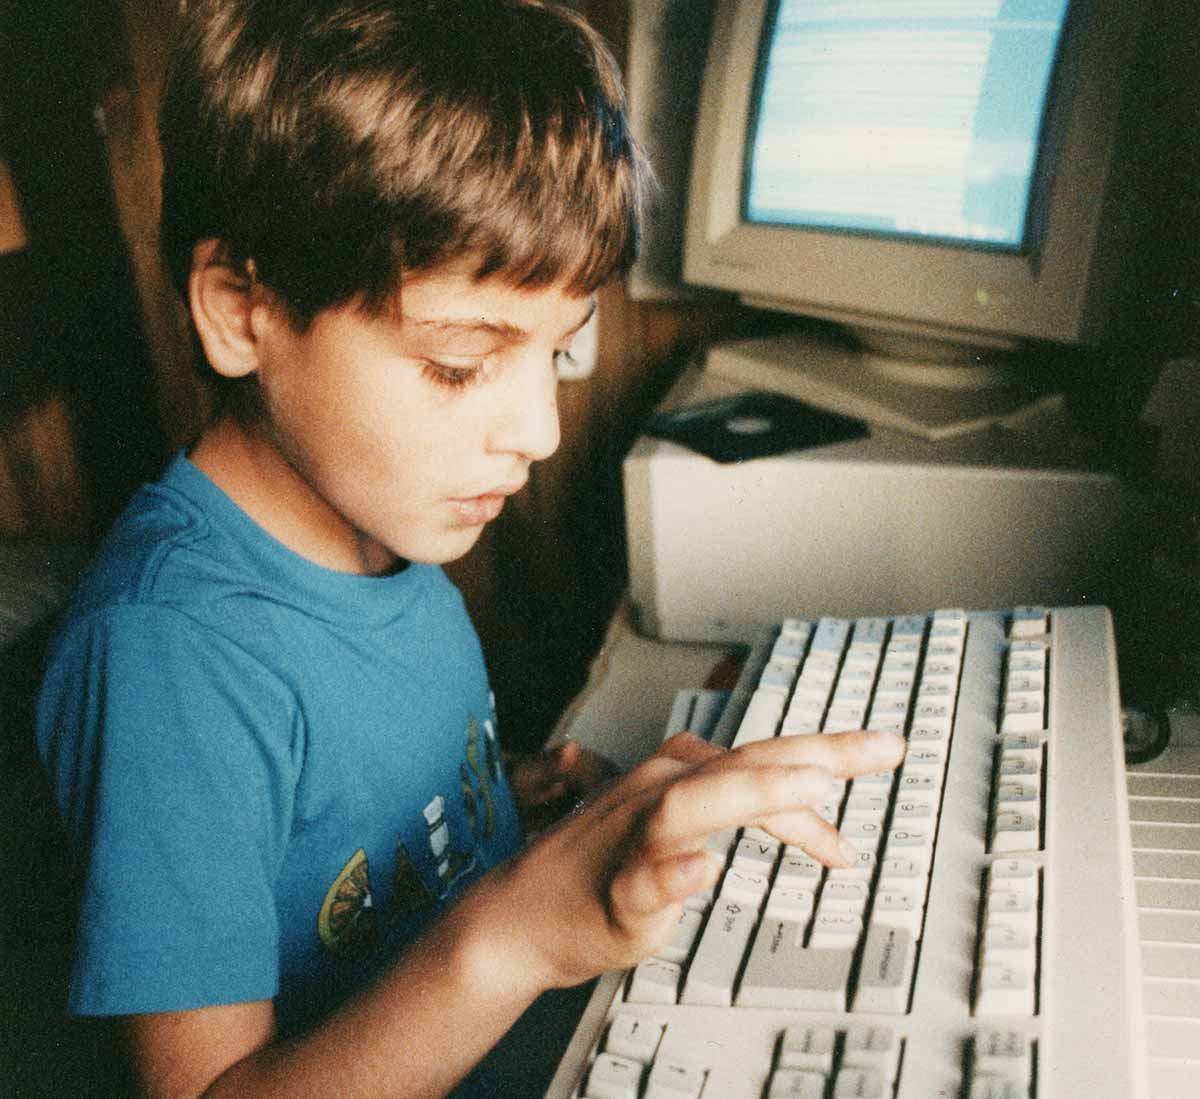 Young Izidor typing on computer